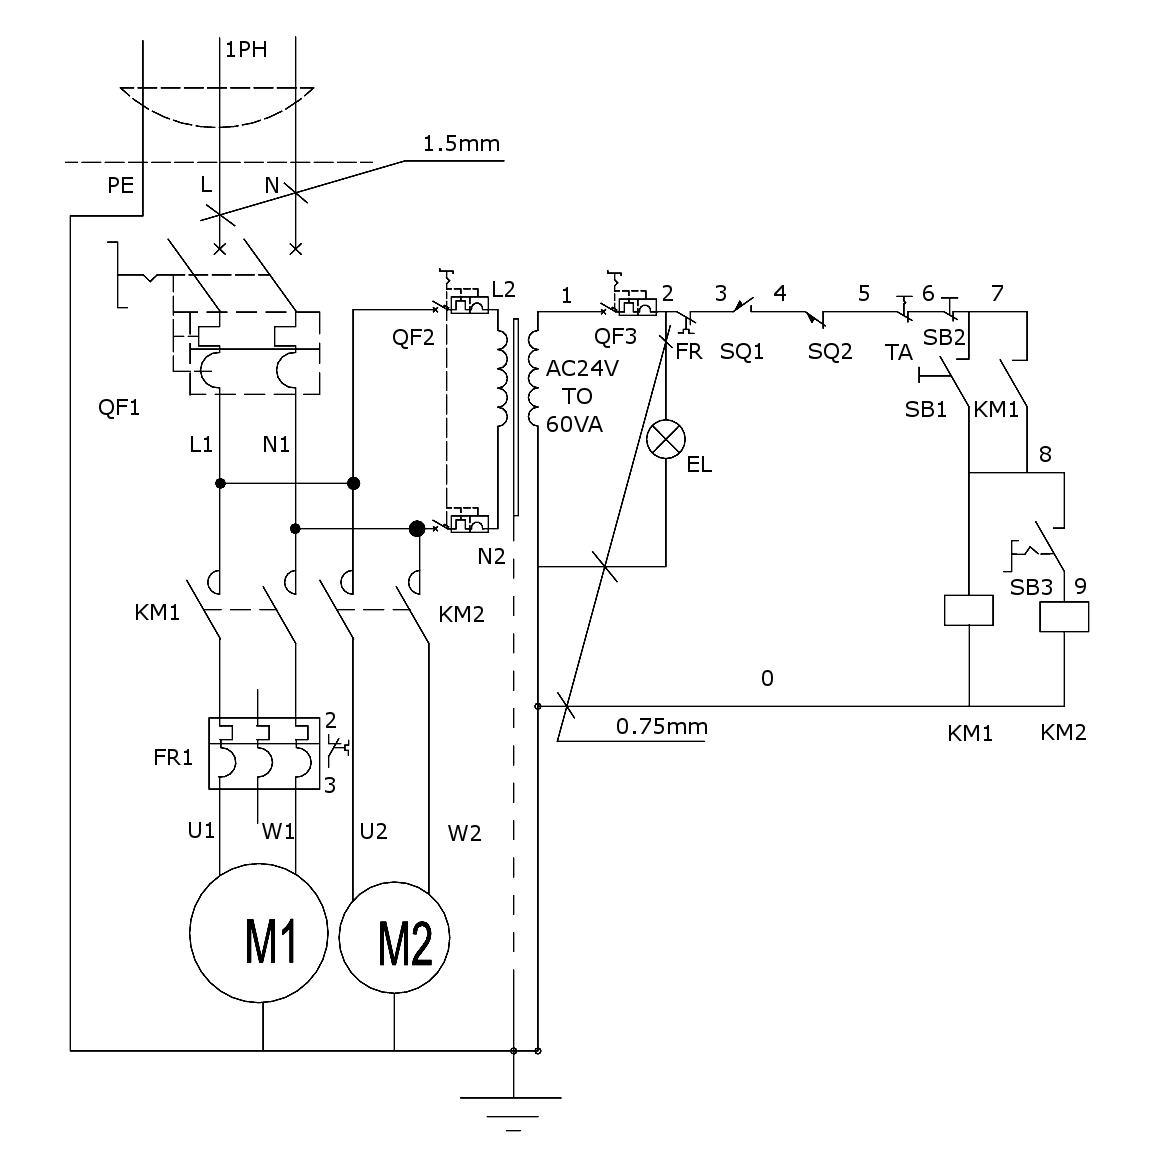 hight resolution of bandsaw wiring diagram 22 wiring diagram images wiring chainsaw parts craftsman 358 350080